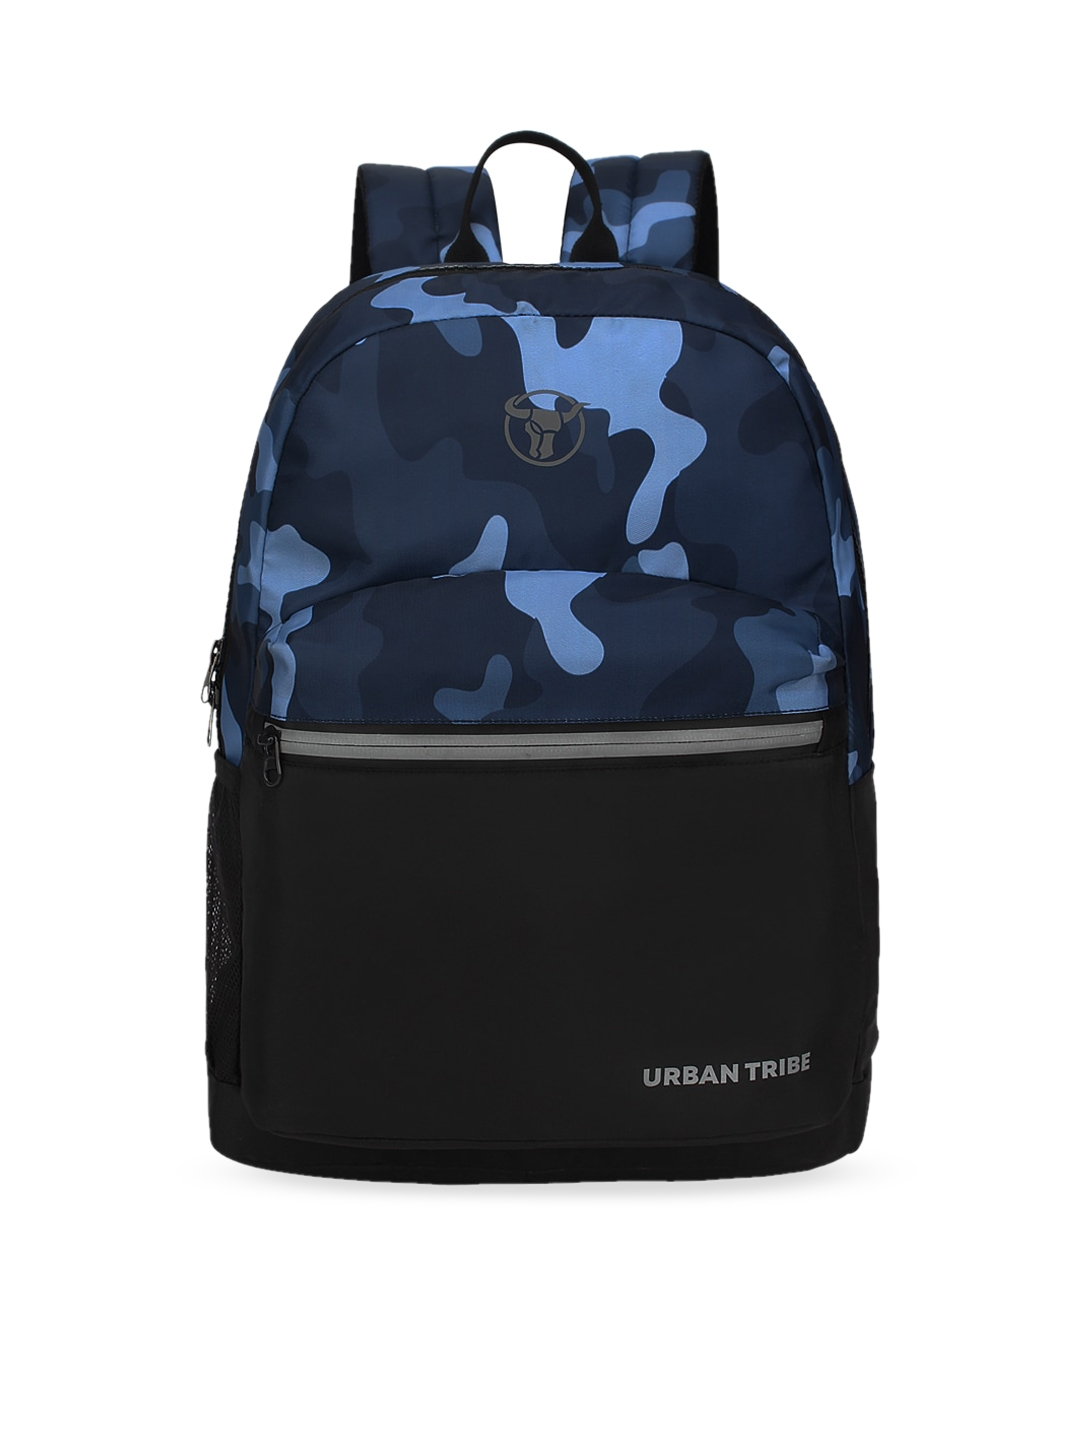 URBAN TRIBE Unisex Blue Camouflage Laptop Backpack